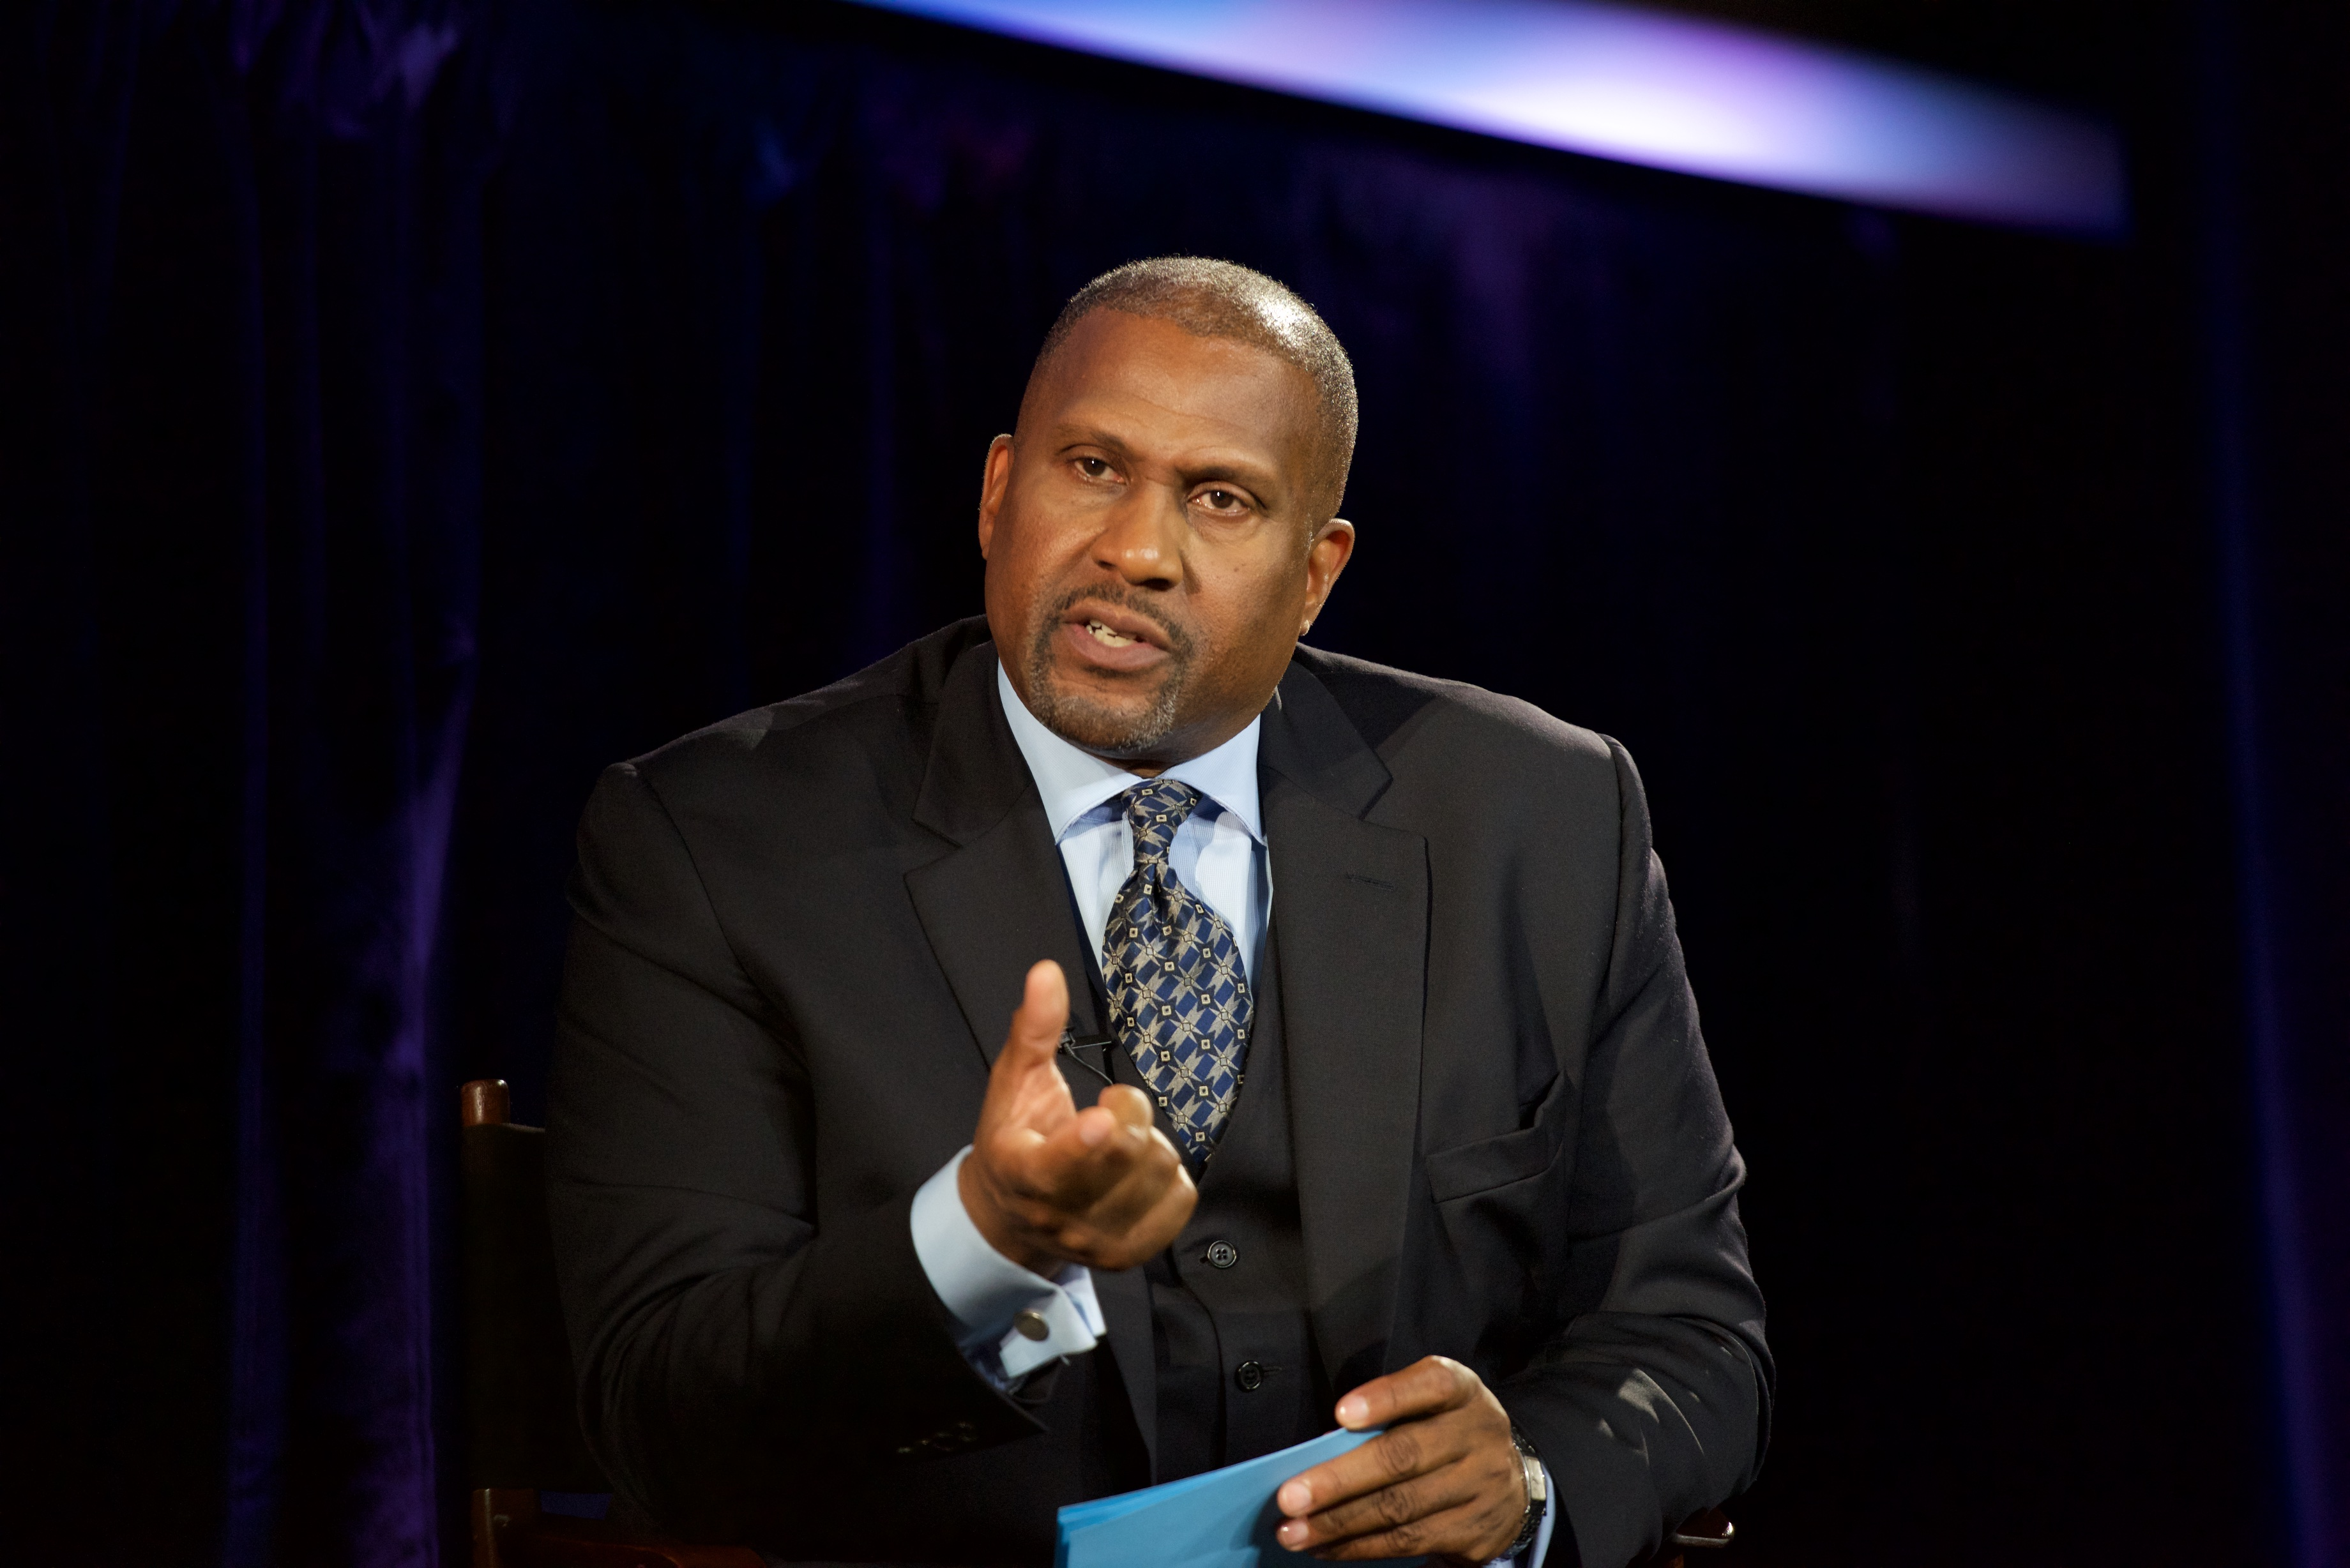 Tavis Smiley officiates Courting Justice: Little Rock, Arkansas at Central Arkansas Library on Sept. 23, 2016 in Little Rock, Arkansa.